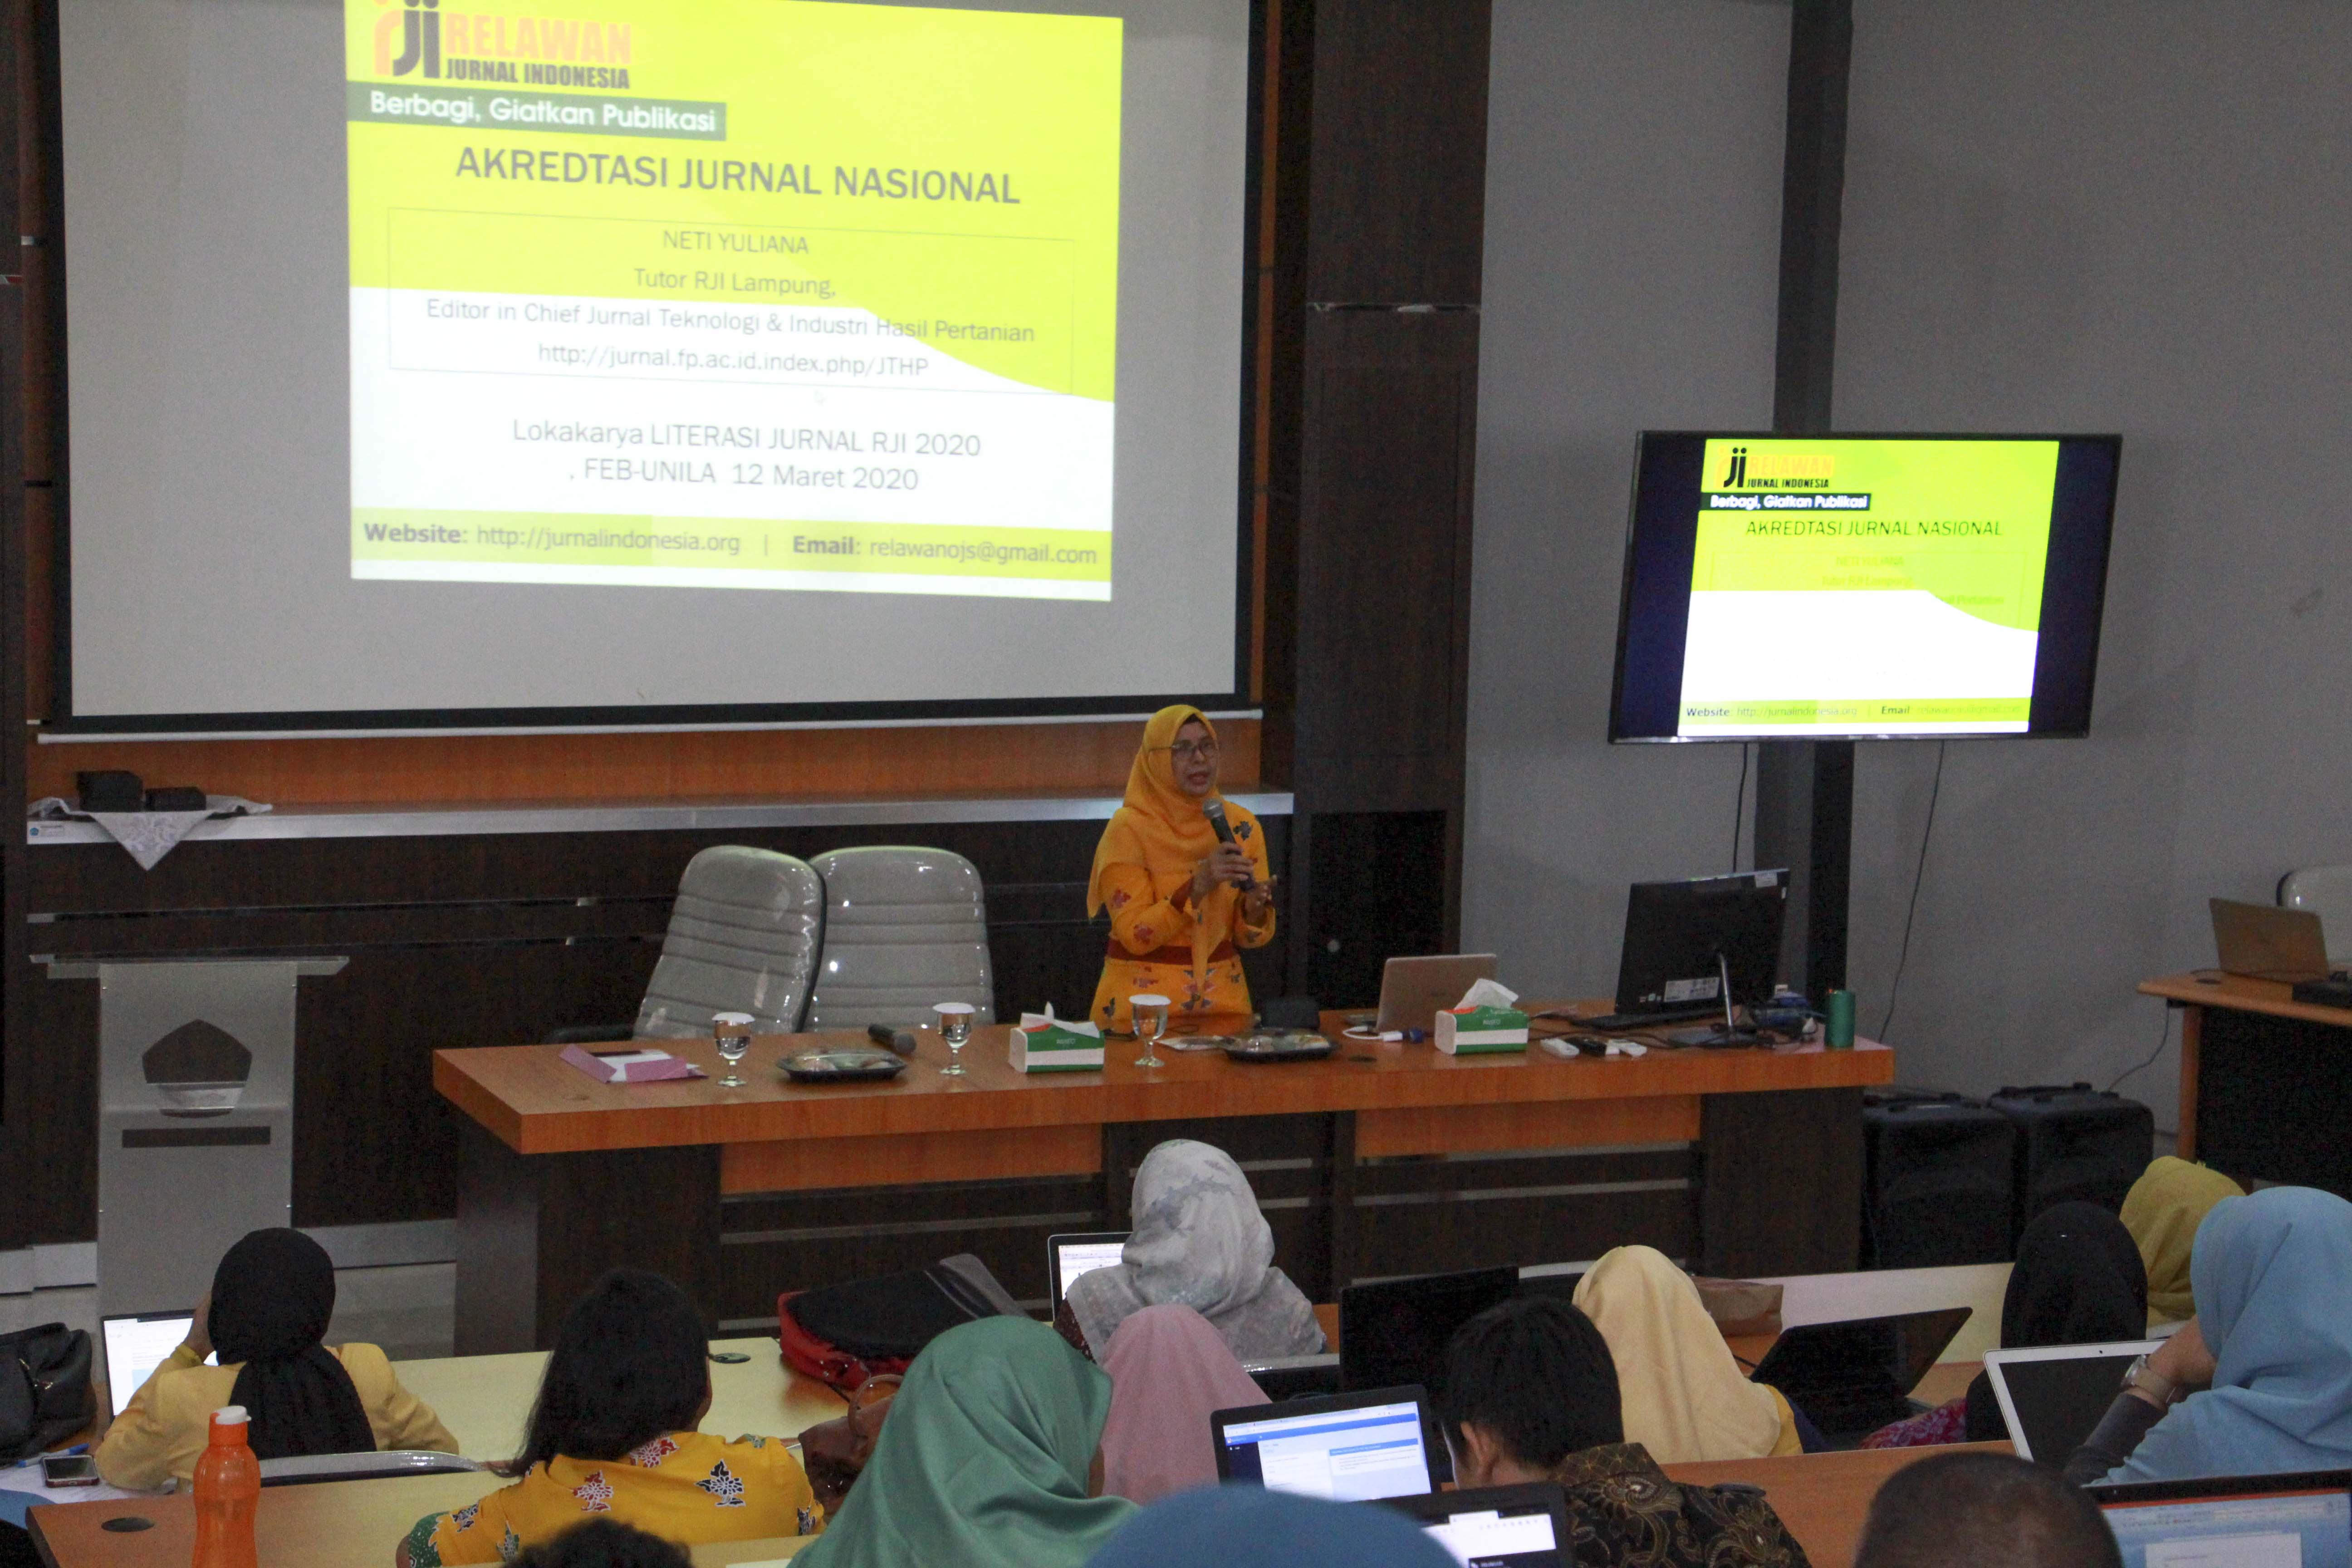 FEB Together with Indonesian Journal Volunteers Hold Journal Literacy Workshop